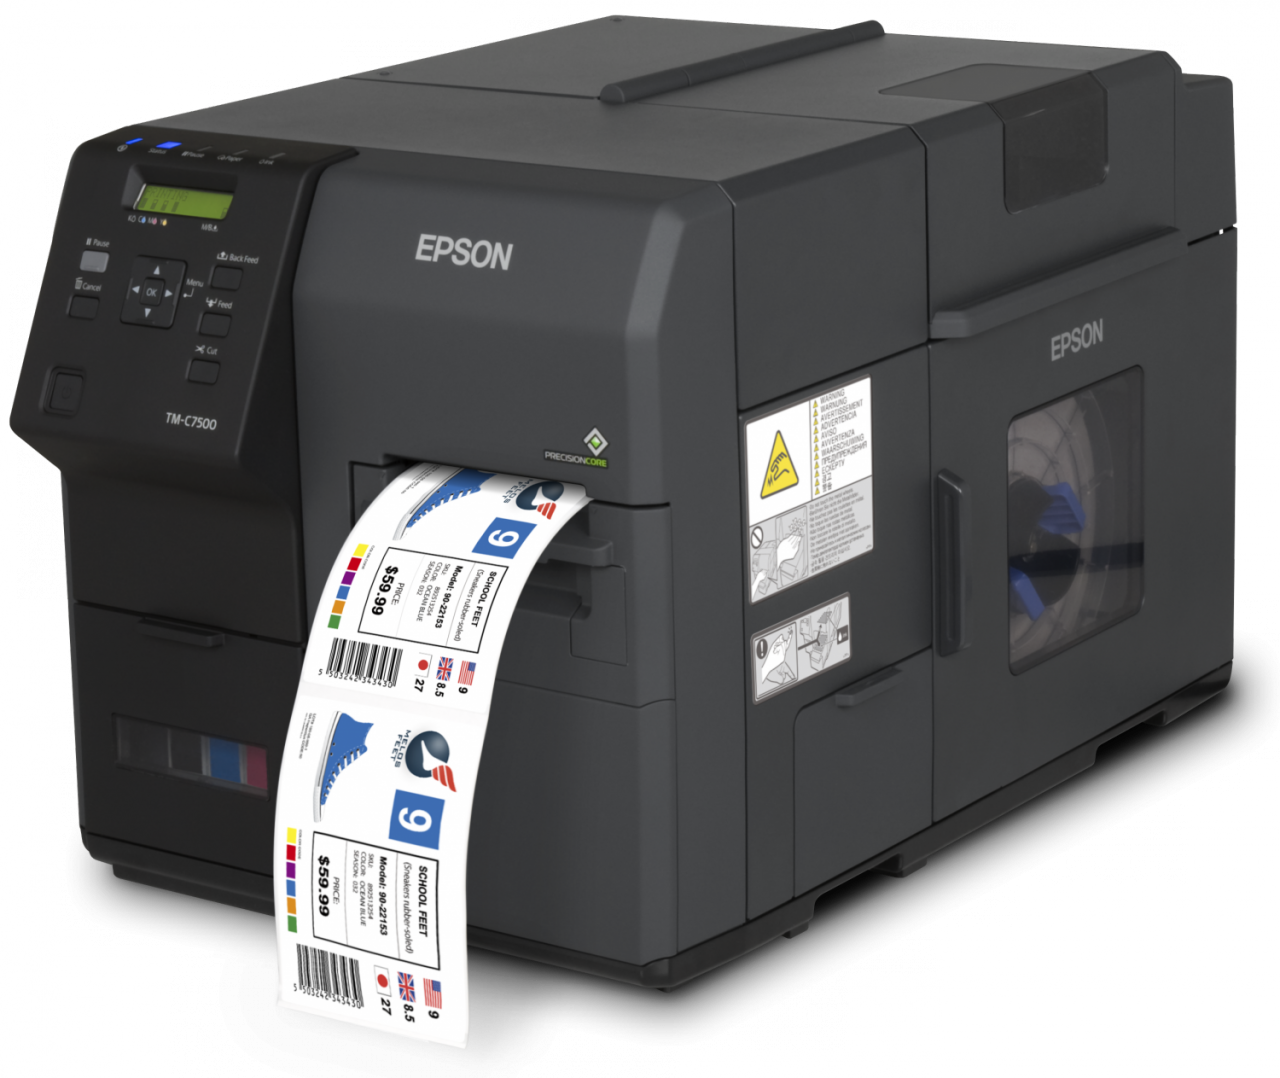 Epson_C7500png595e14880f3c7